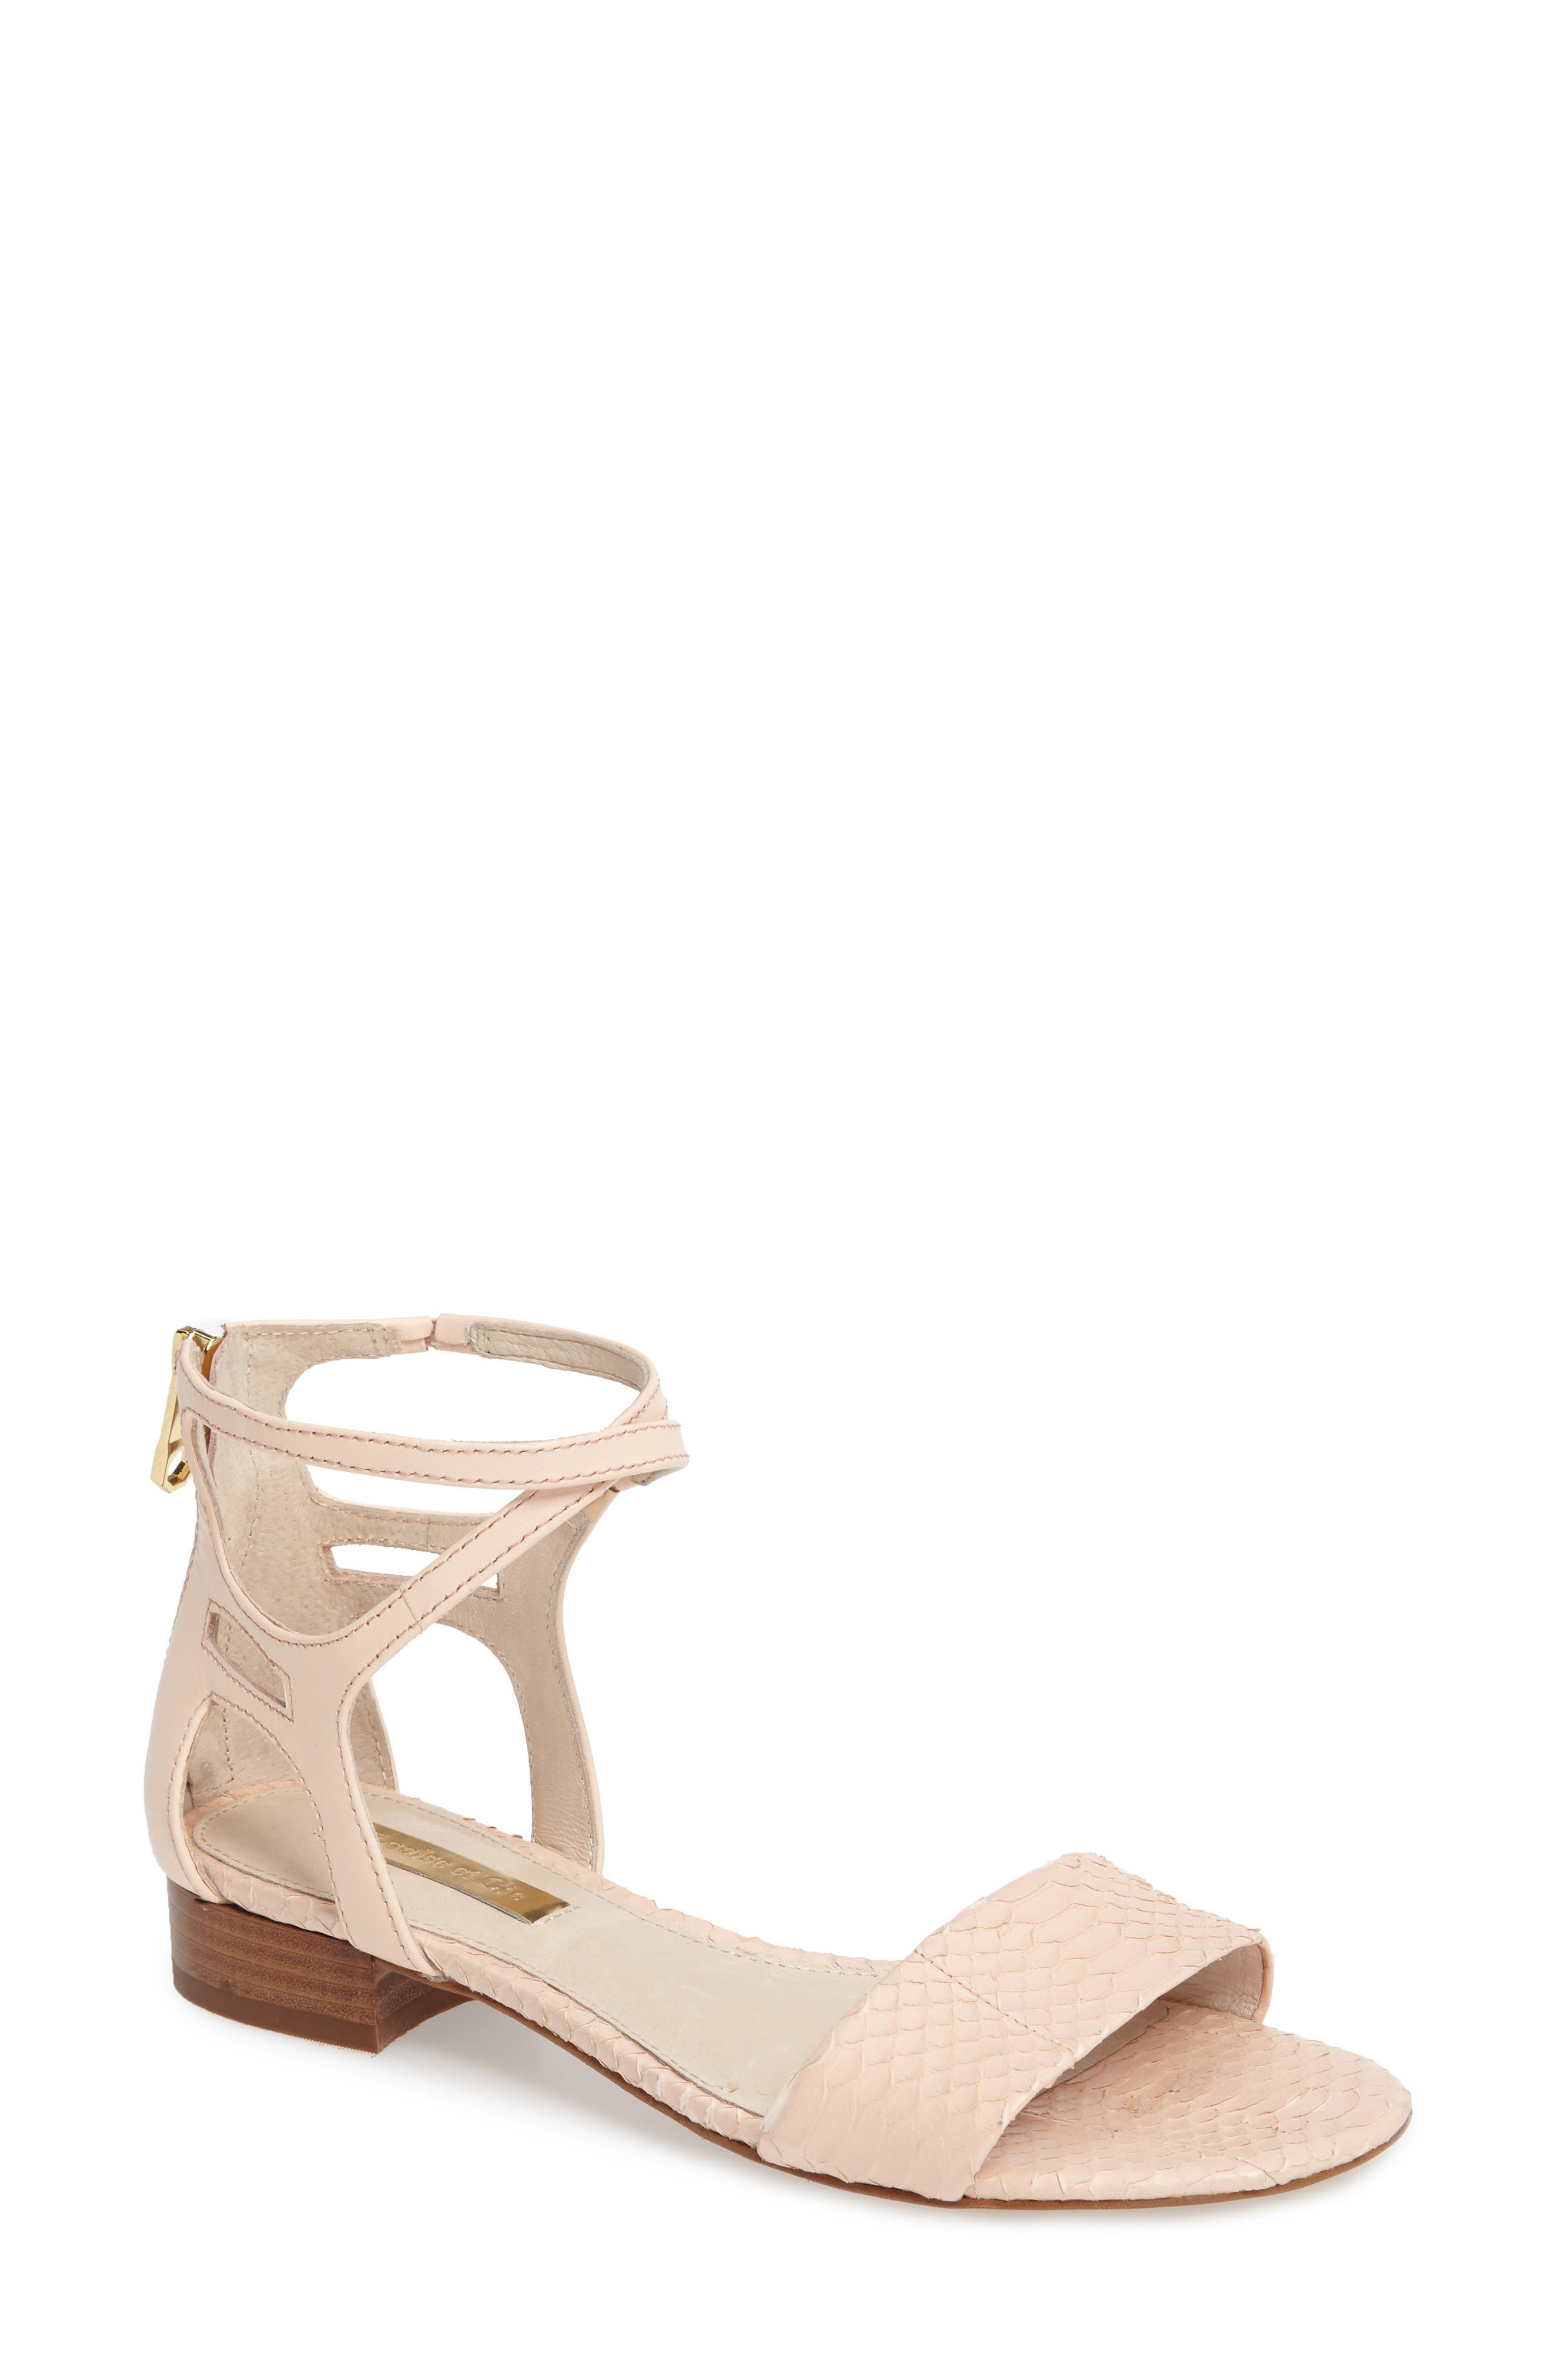 Adley Ankle Strap Sandal,                             Main thumbnail 1, color,                             Mimosa Leather